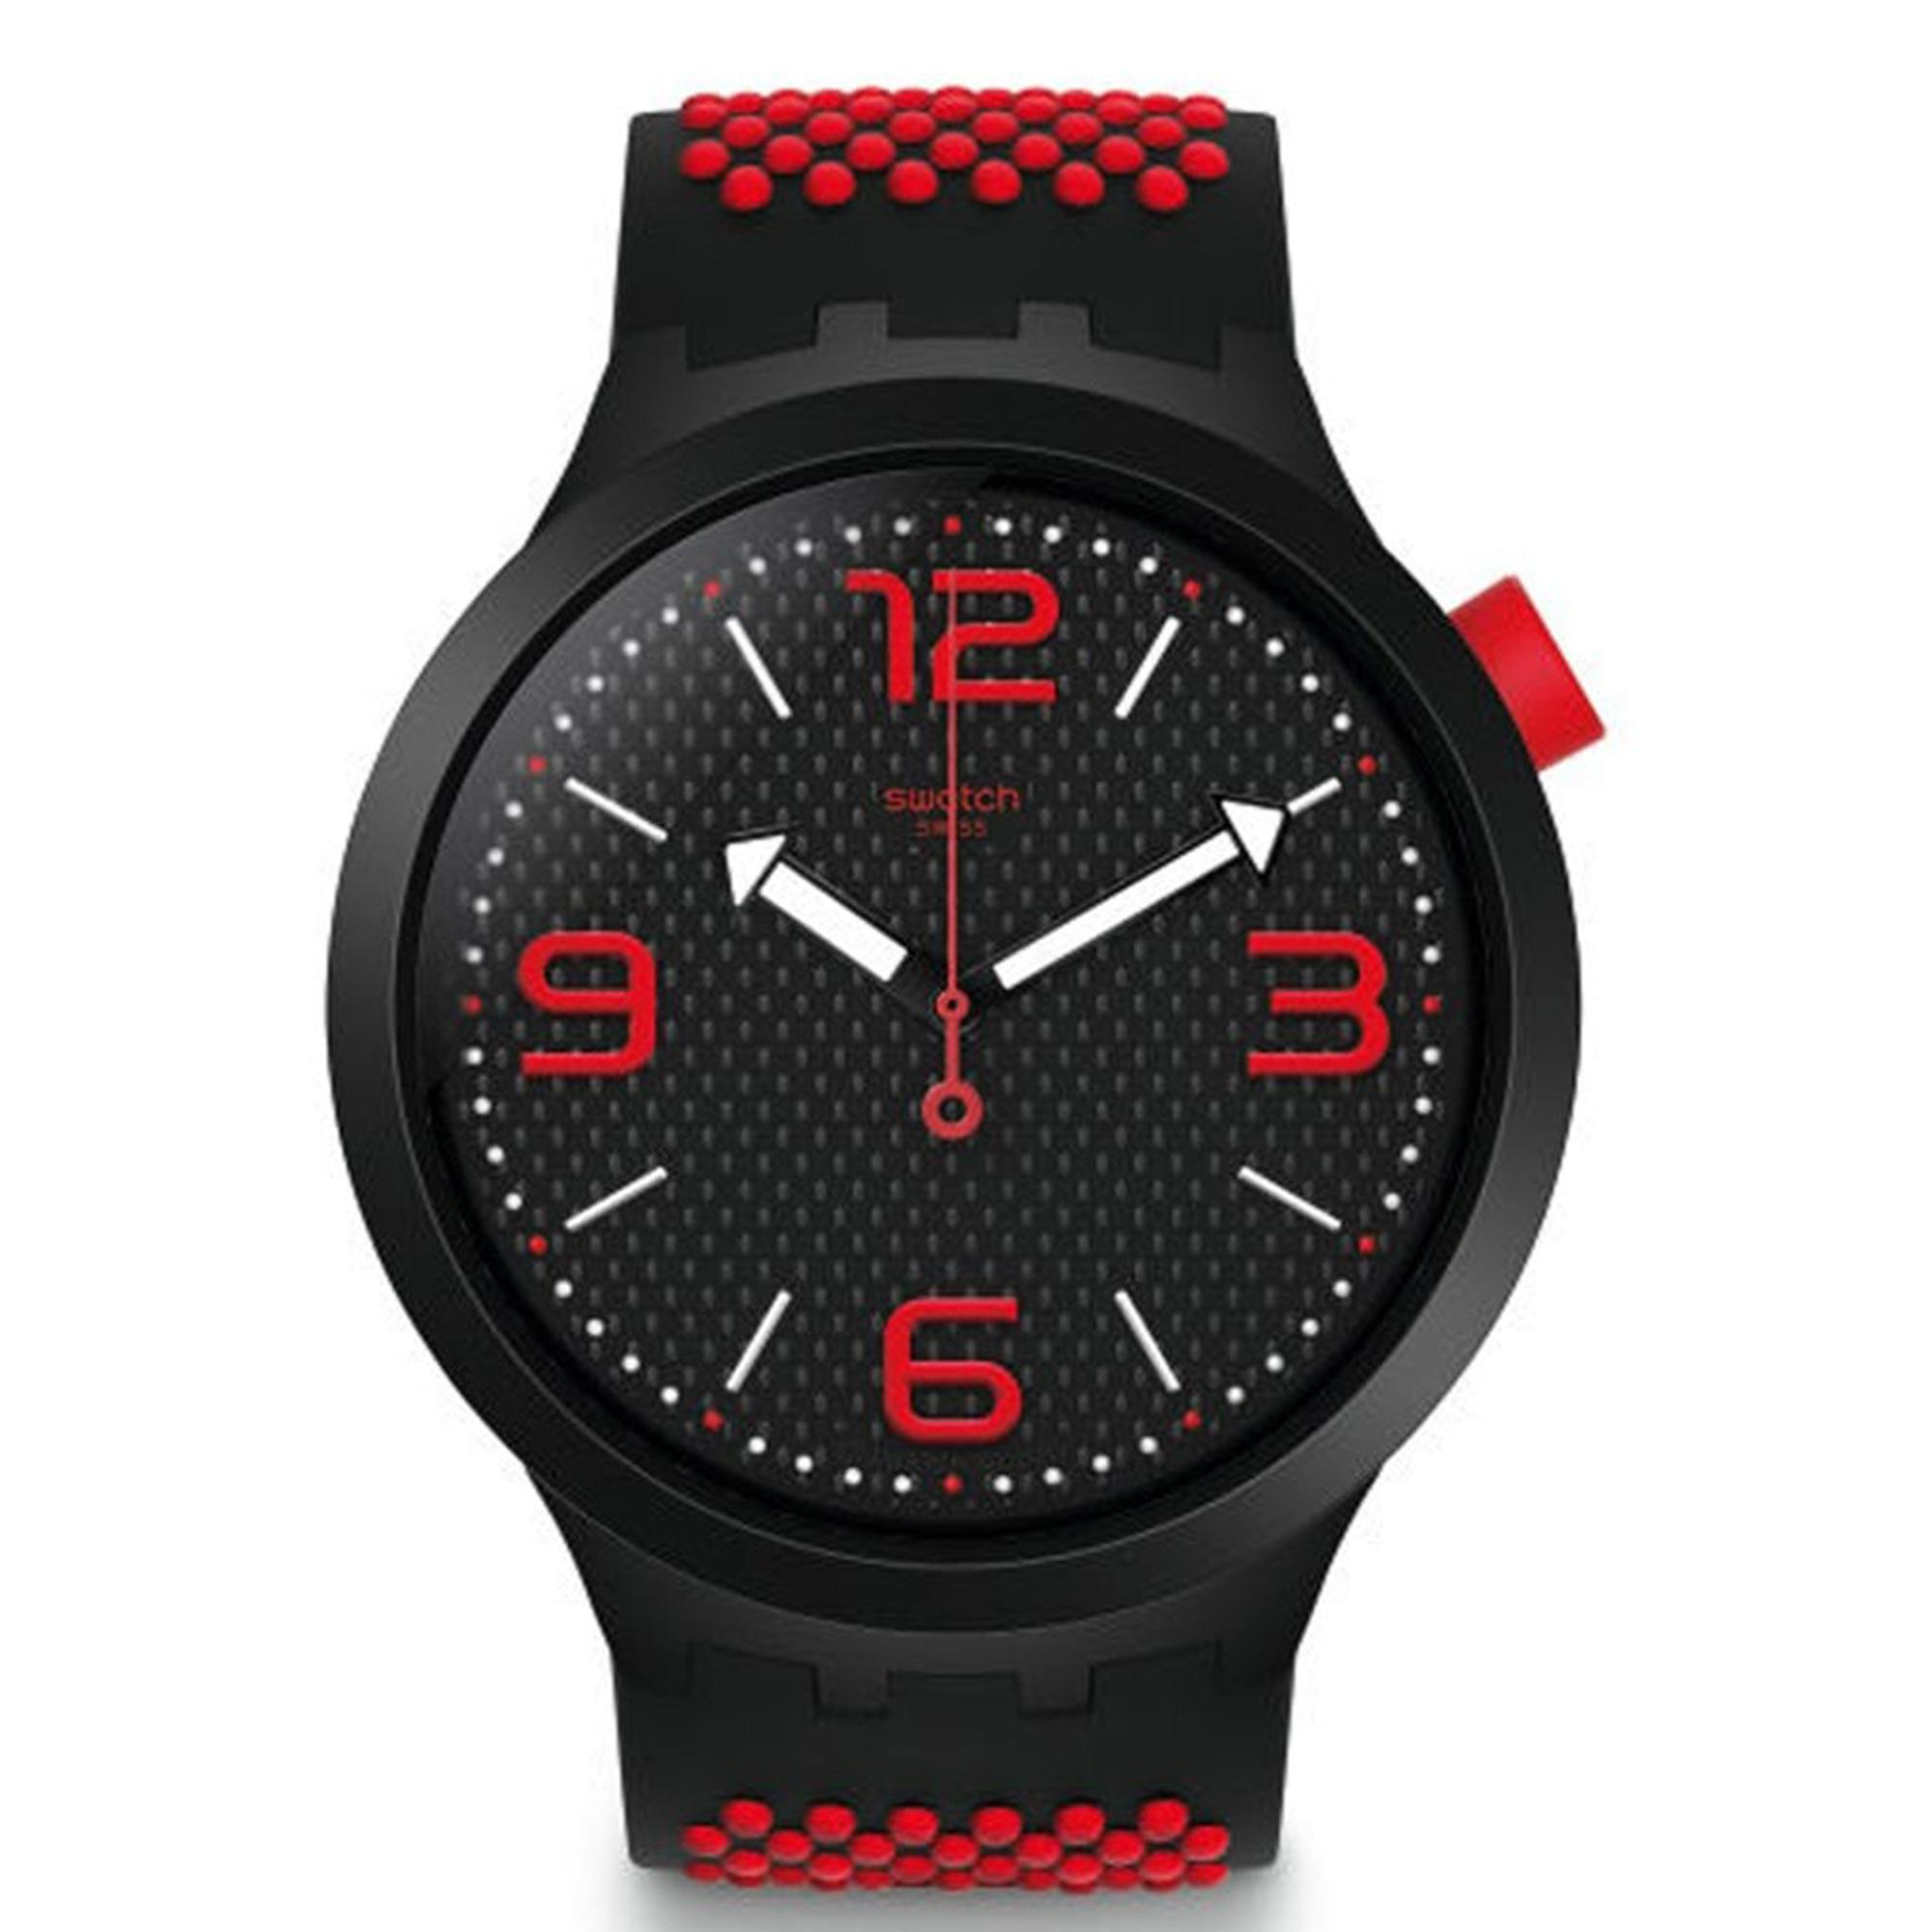 Swatch Big Bold BBBlood Quartz Black Red Silicone Mens Watch SO27B102 47mmThis Swatch Big Bold BBBlood Quartz Black Red Silicone Mens Watch SO27B102 47mm is a striking addition to the Swatch brand. A black patterned dial is complimented by red accents including Arabic markers at every 3 hour interval. The hands are in the shape of arrows, pointing you in the right direction, which in turn are powered by a quartz movement. Plexiglass and a black plastic case are used to protect the simple yet striking dial. A black and red silicone strap can then be fastened using a standard buckle.This watch has a water resistance of 30 metres, making it suitable for light splashes.Key Features:Big Bold FamilyQuartz MovementBlack Red Silicone StrapBlack Plastic CaseStandard BuckleBlack Dial30m Water ResistantThe Family: Big BoldBig Bold is a new 2019 range from Swatch. These watches are inspired by bold ideas with an urban style, 47mm case size and arrows as hands to point you in the right direction.The Brand: SwatchSwatch watches are globally-renowned for their trademark combination of quality Swiss watchmaking, pioneering use of plastic cases and straps, and eye-catching designs. There is a Swatch watch to suit every age, taste and lifestyle, with this variety and sense of difference ensuring that Swatch watches remain some of the most popular and sought after currently manufactured.